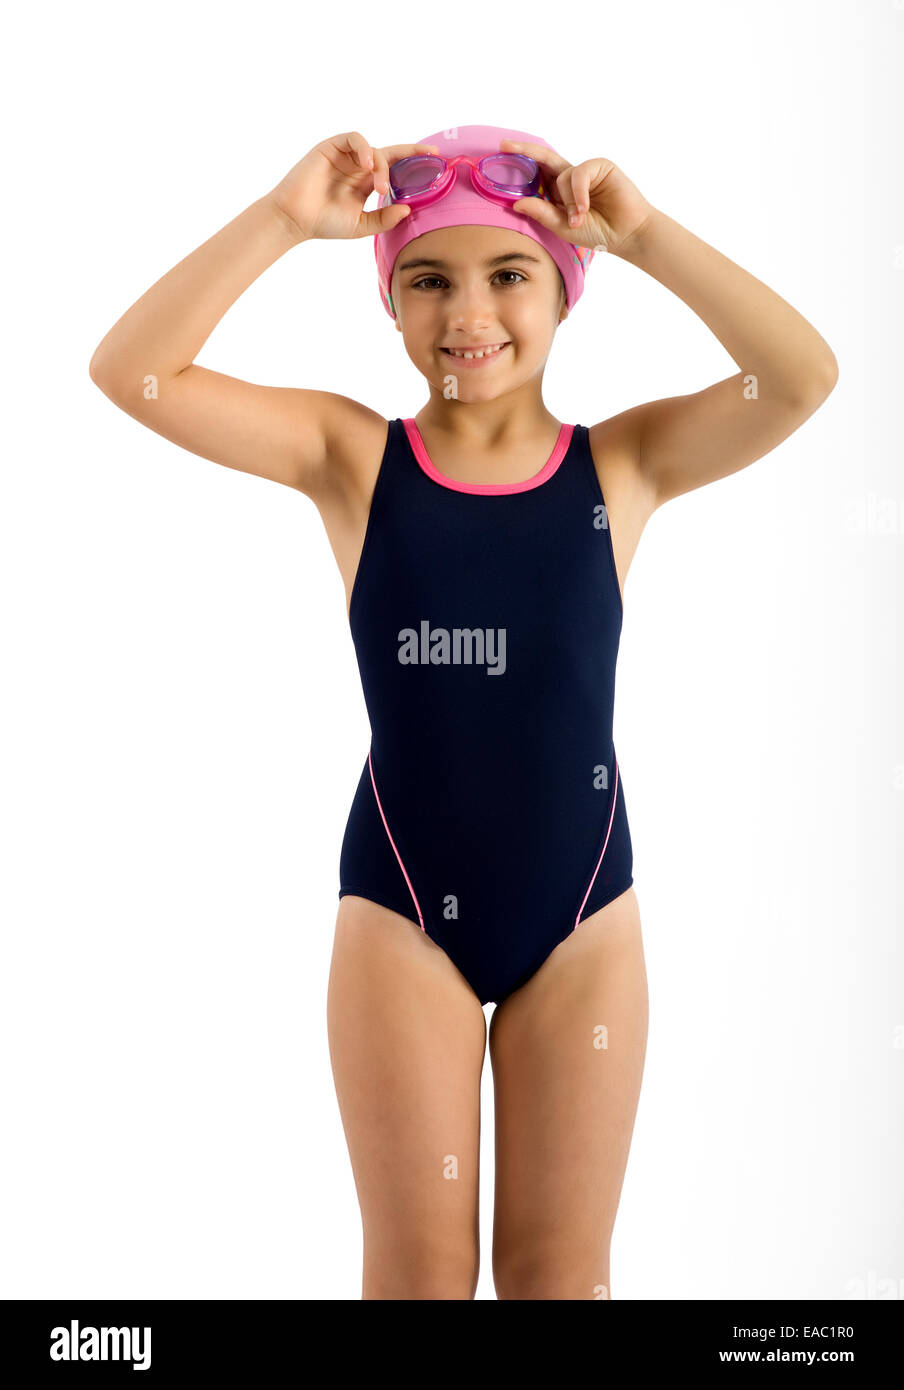 Pretty Young Girl in Swimming Fashion Outfit - Stock Image